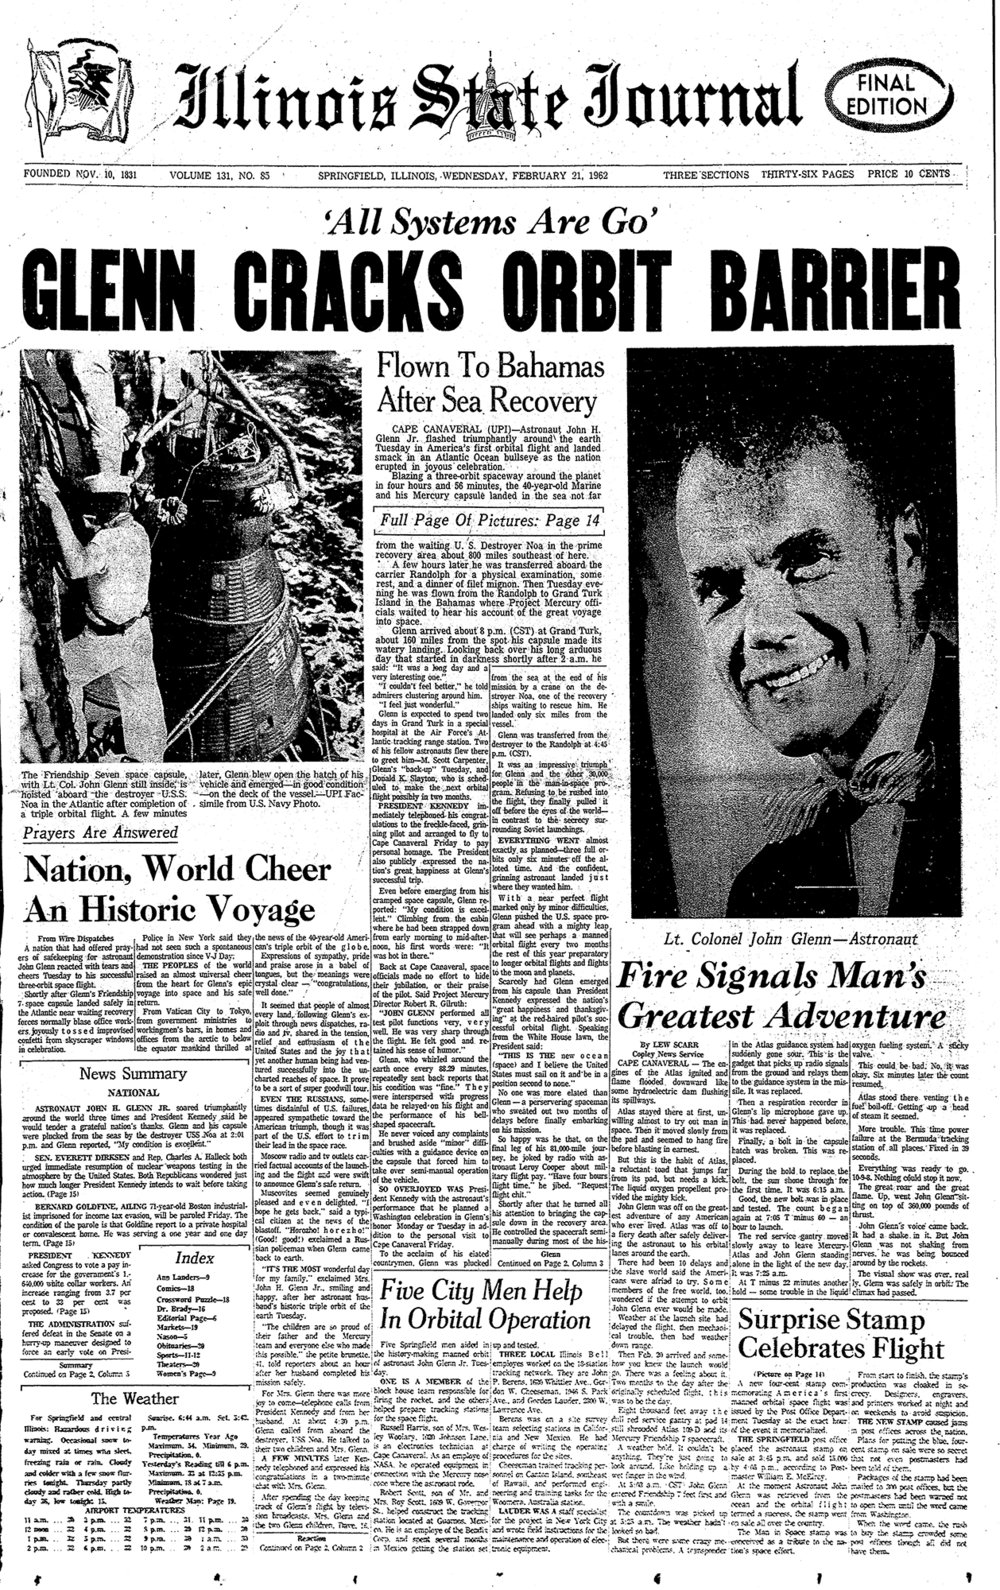 Sen. John Glenn orbits earth, Illinois State Journal front page Feb. 21, 1962